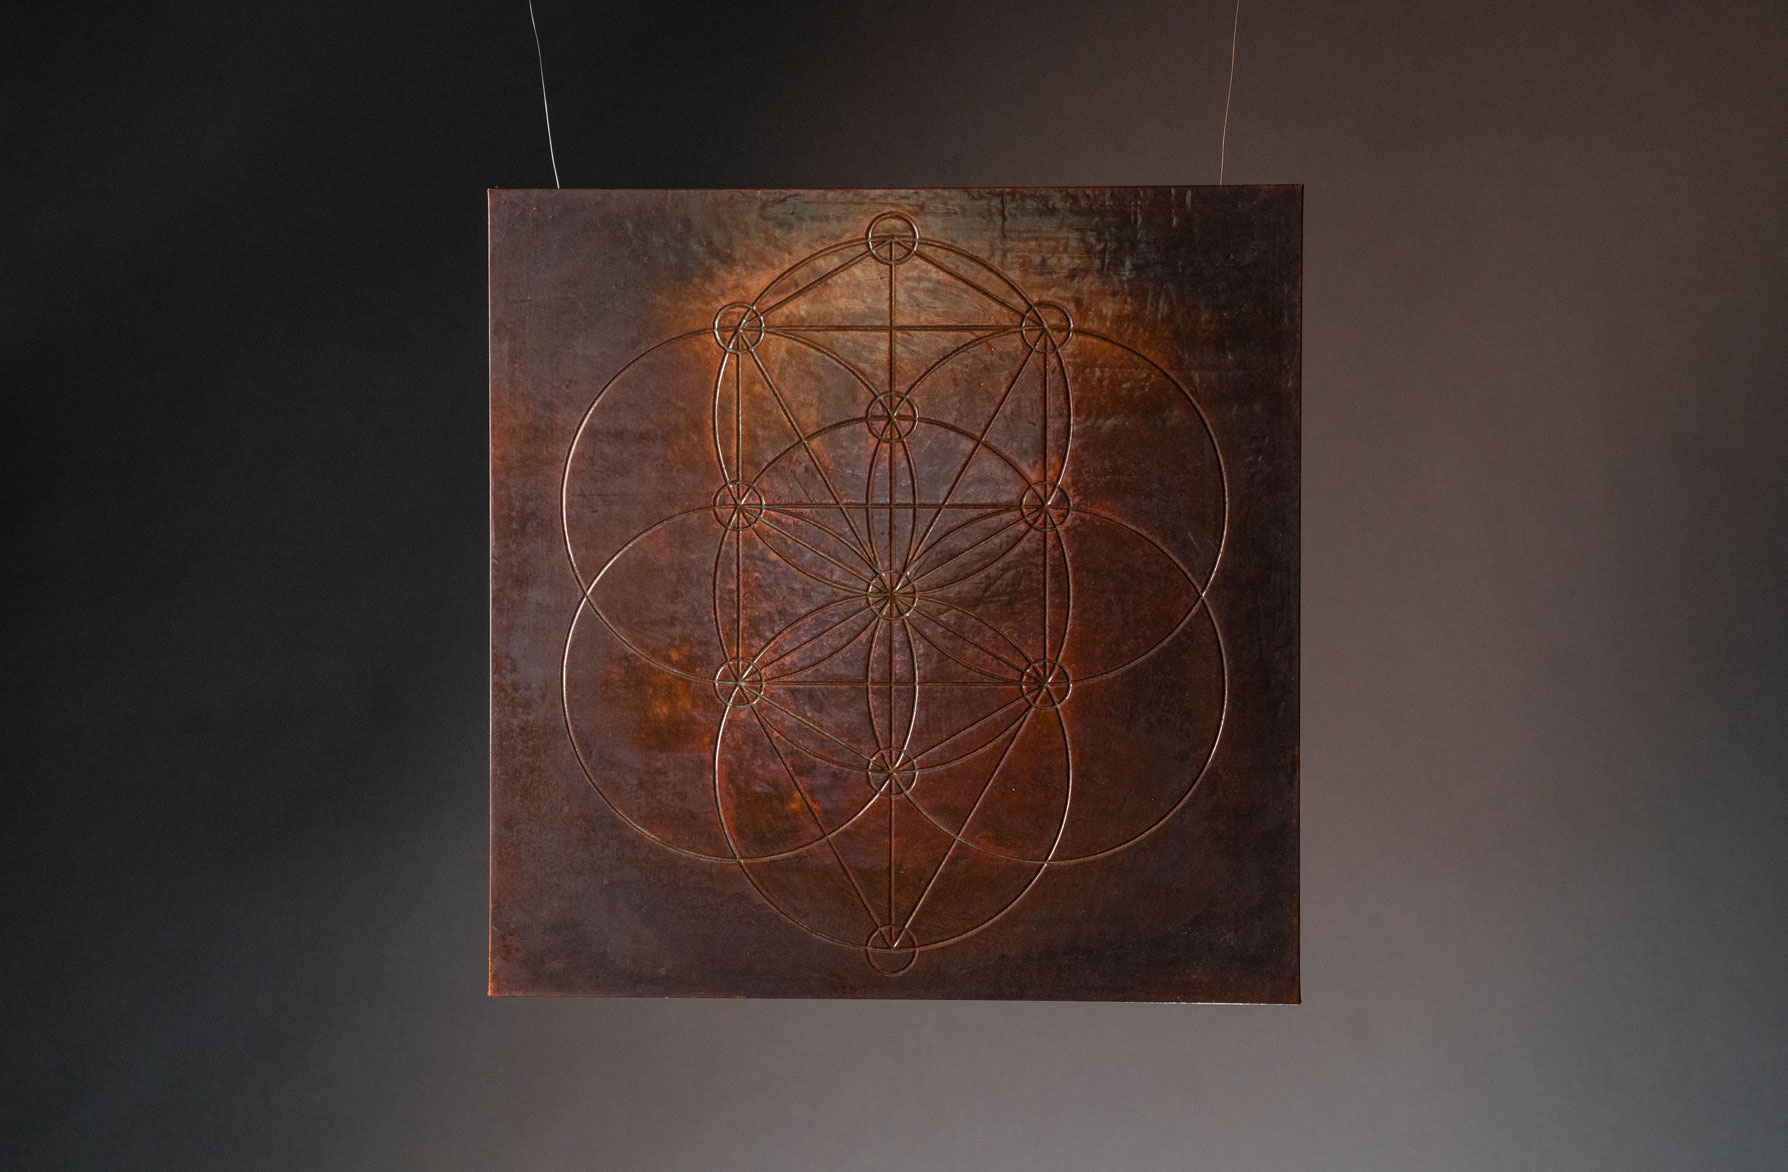 TREE - Derived from the Flower of Life, Tree geometric form, throughout the spiritual cosmos, depicts a map of creation and is said to act as a template from which all life springs. God is in the details.MATERIAL: Copper